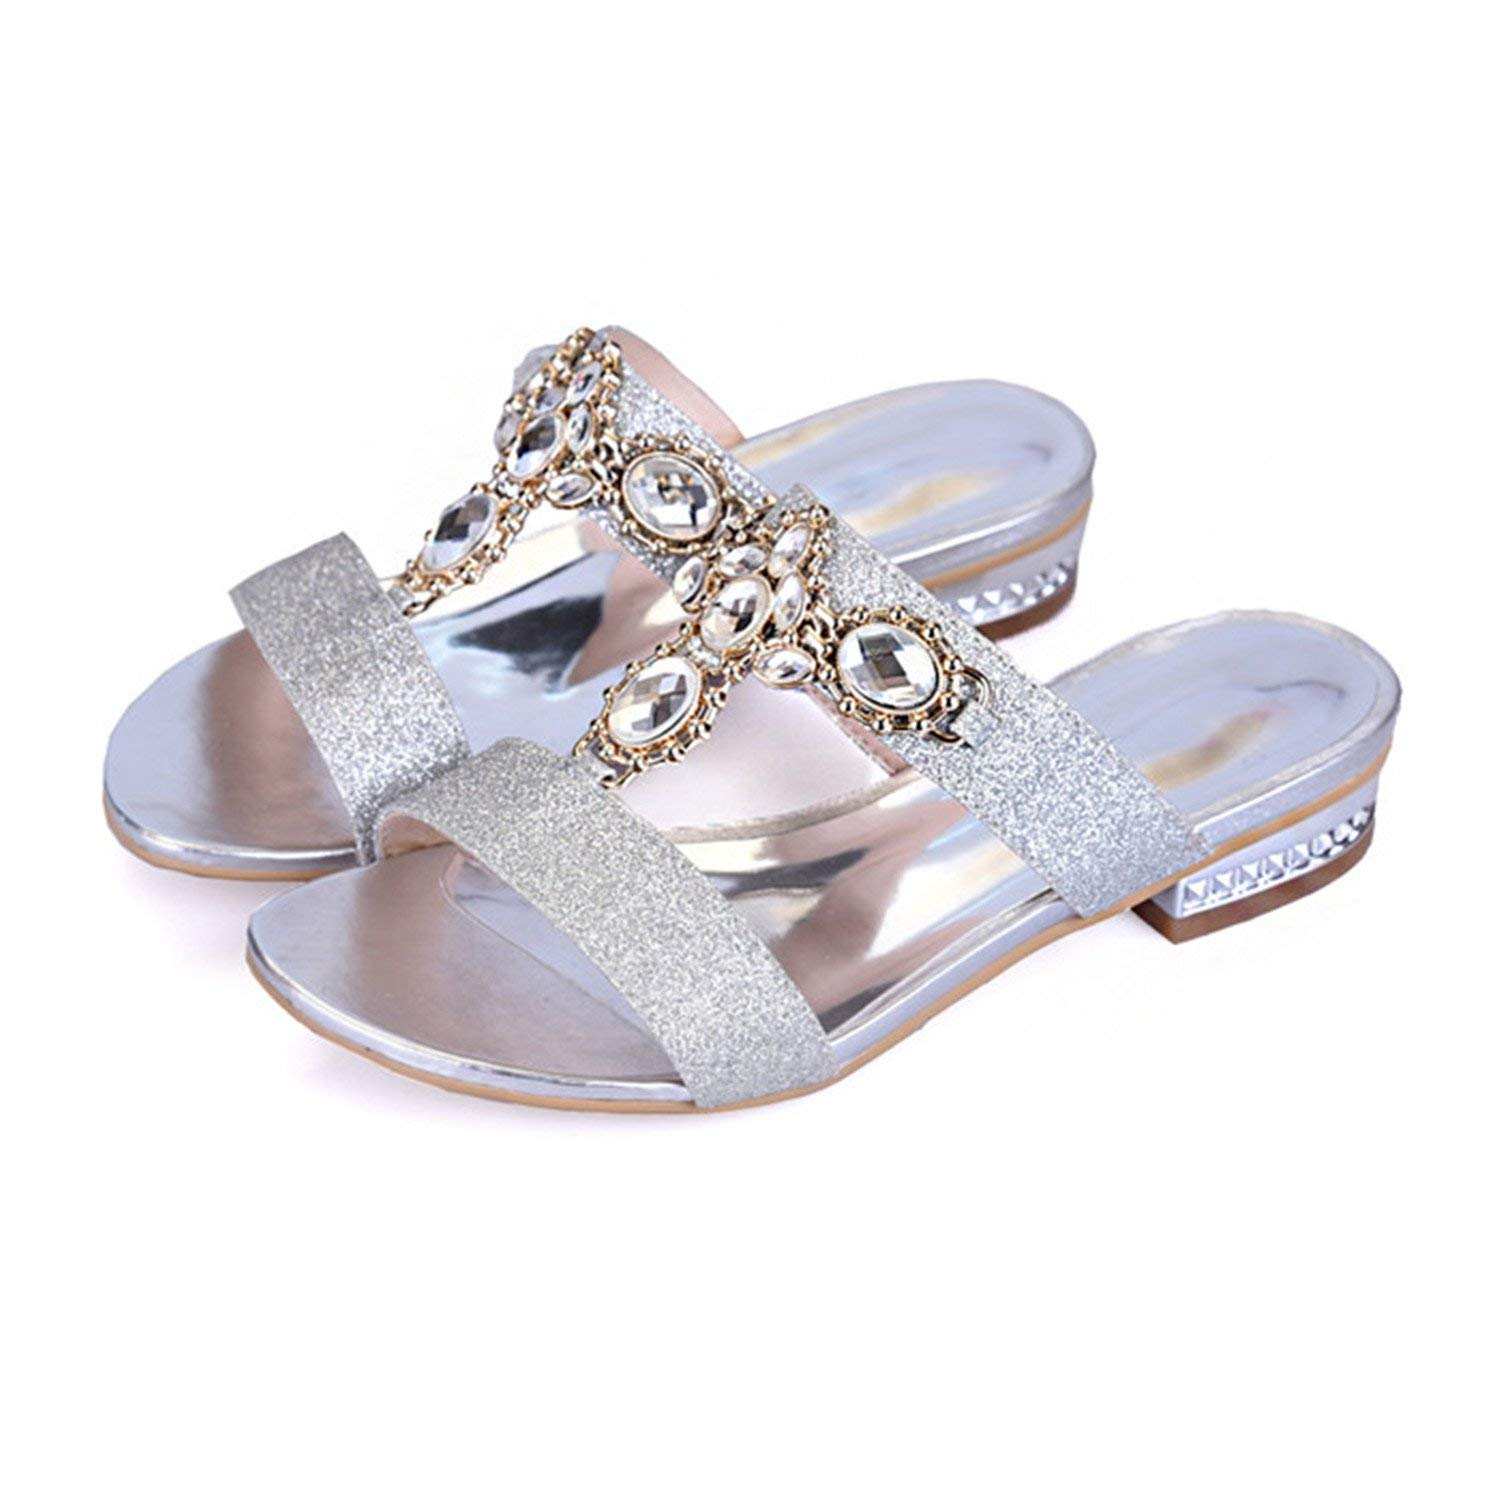 9a42fc0dd Get Quotations · Shoes Women Sandals Summer Rhinestone Ladies Slippers Open  Toe Low Heel Slides Crystal Sandals Sliver Gold